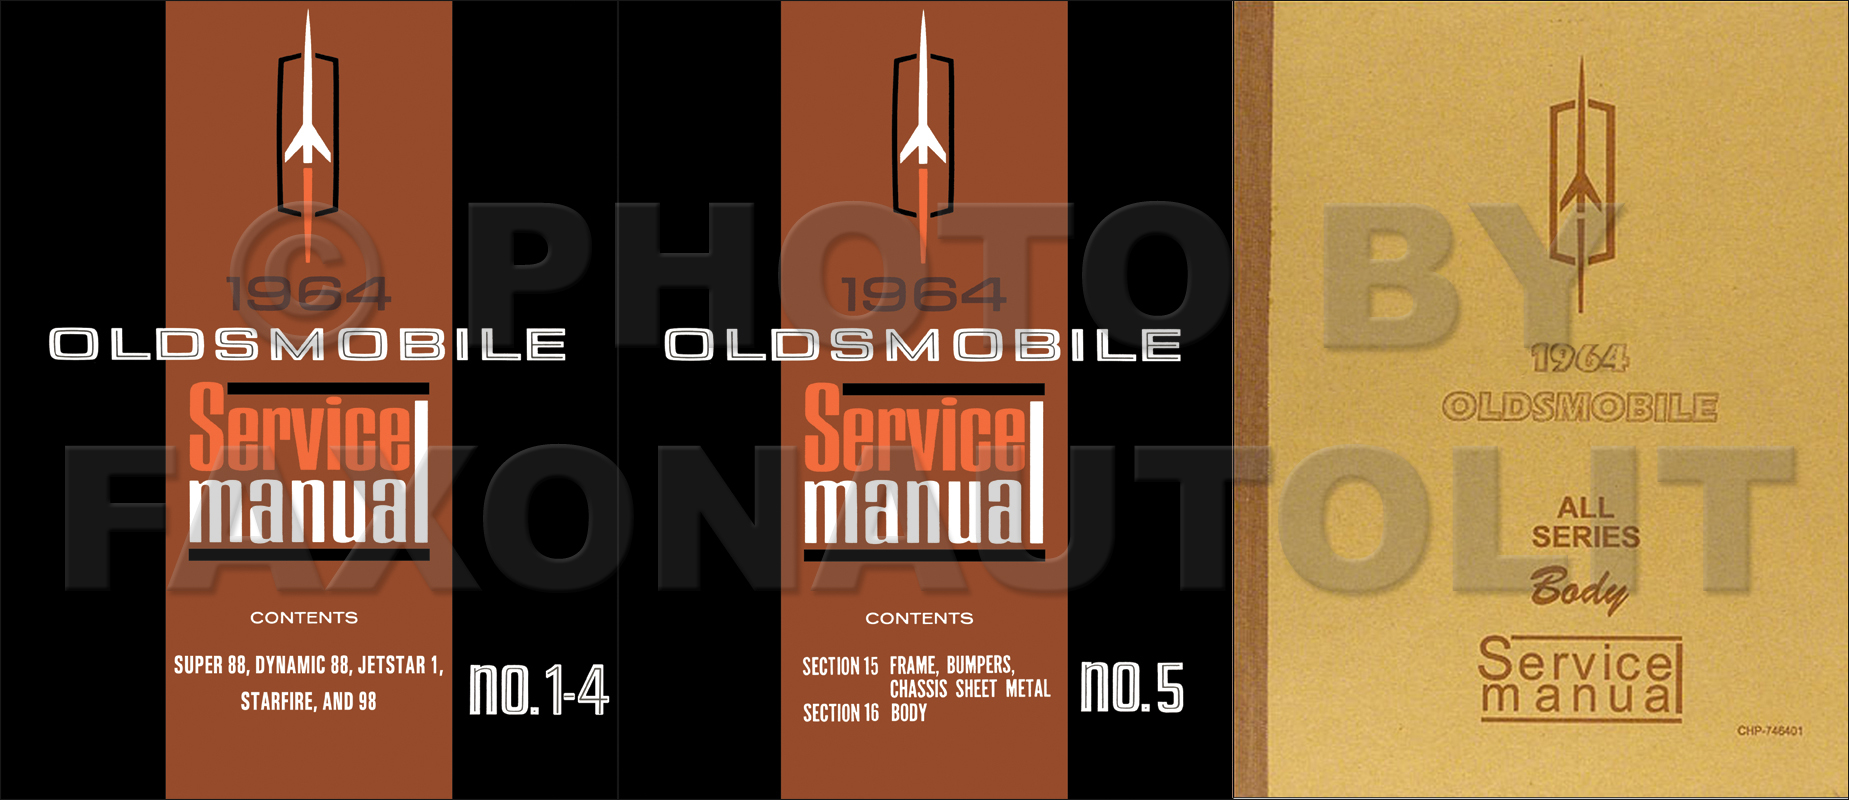 1964 Oldsmobile Repair Manual Reprint 5 Volume Set